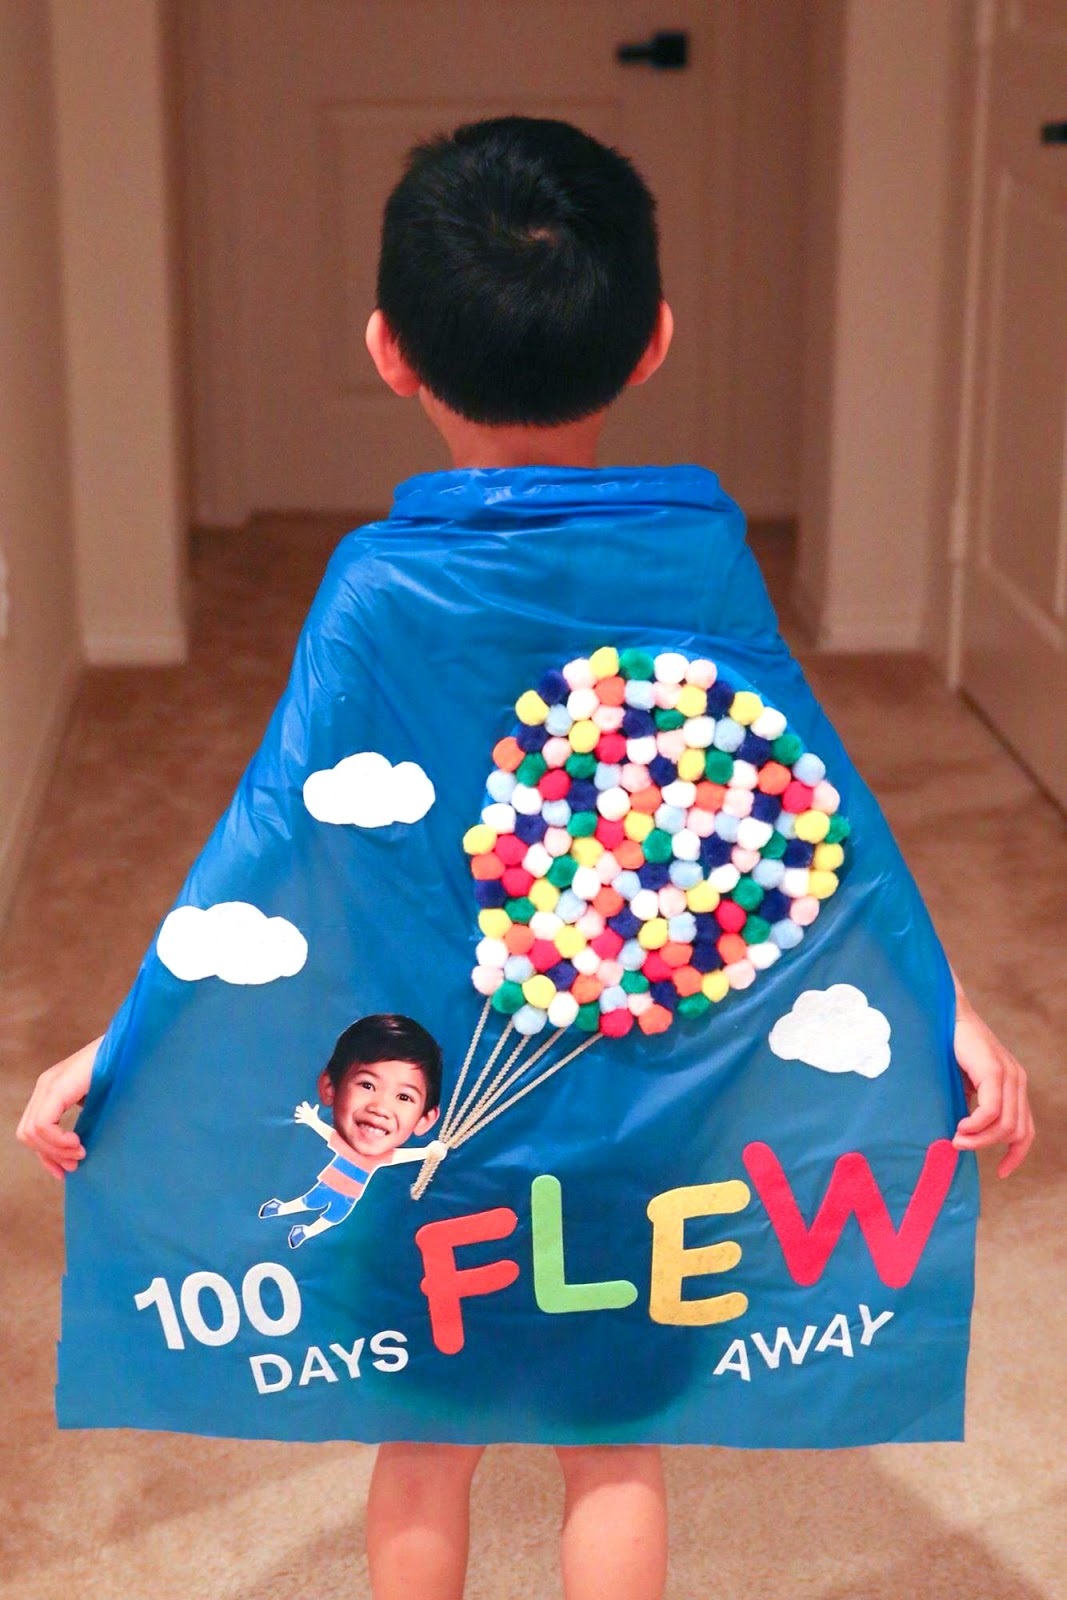 100 Days Flew Away - Cute 100 Days of School Shirt Idea